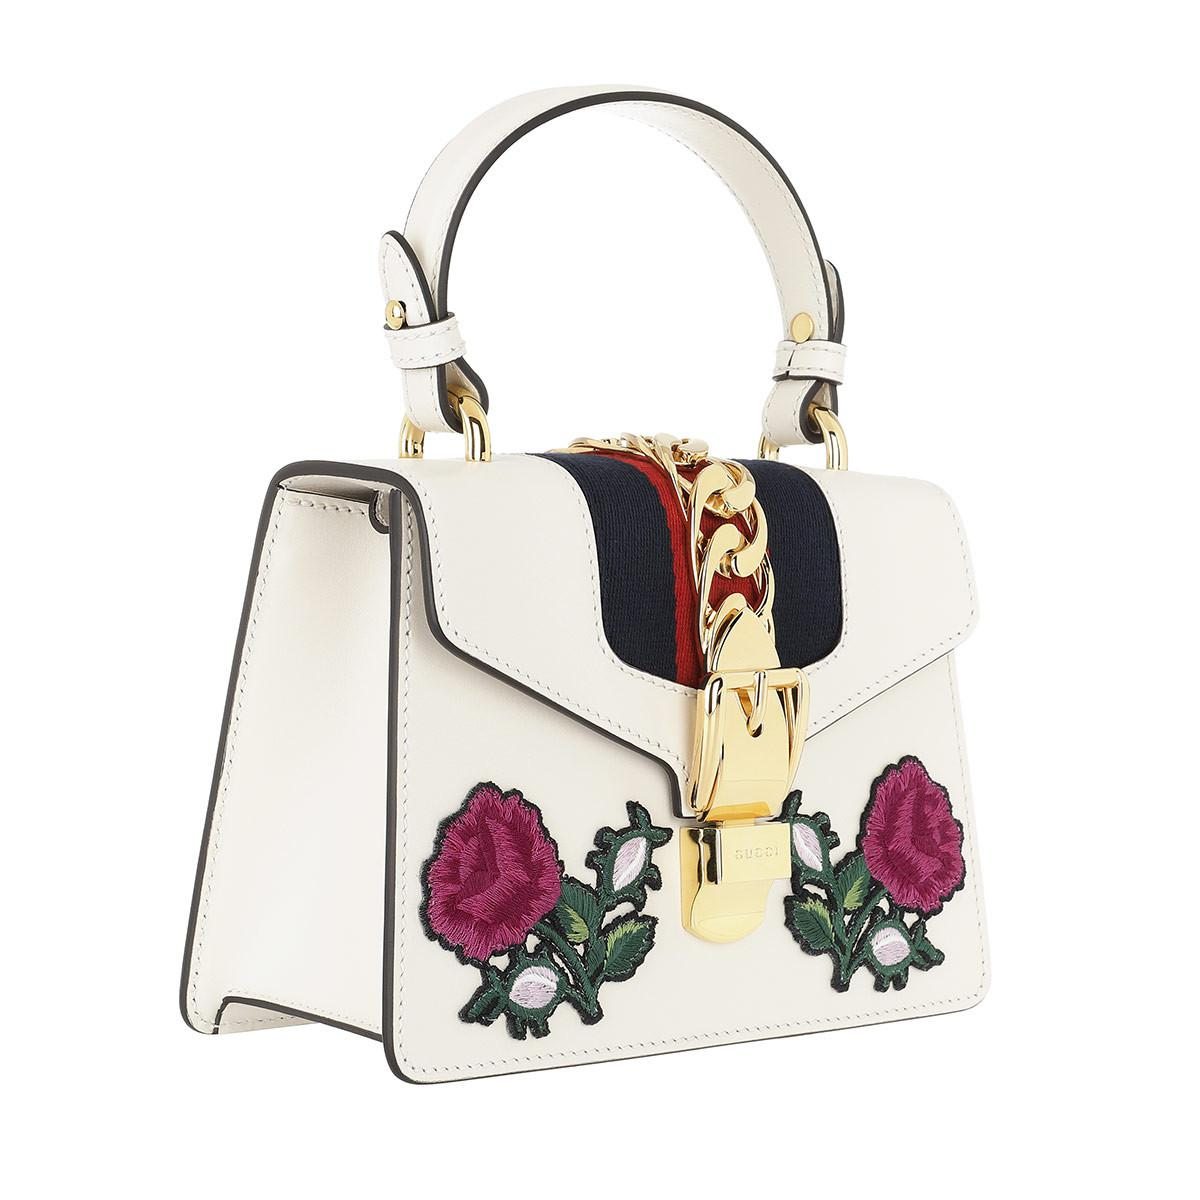 d0c74702af0 Gucci Sylvie Embroidered Mini Bag White multi in White - Save 20% - Lyst